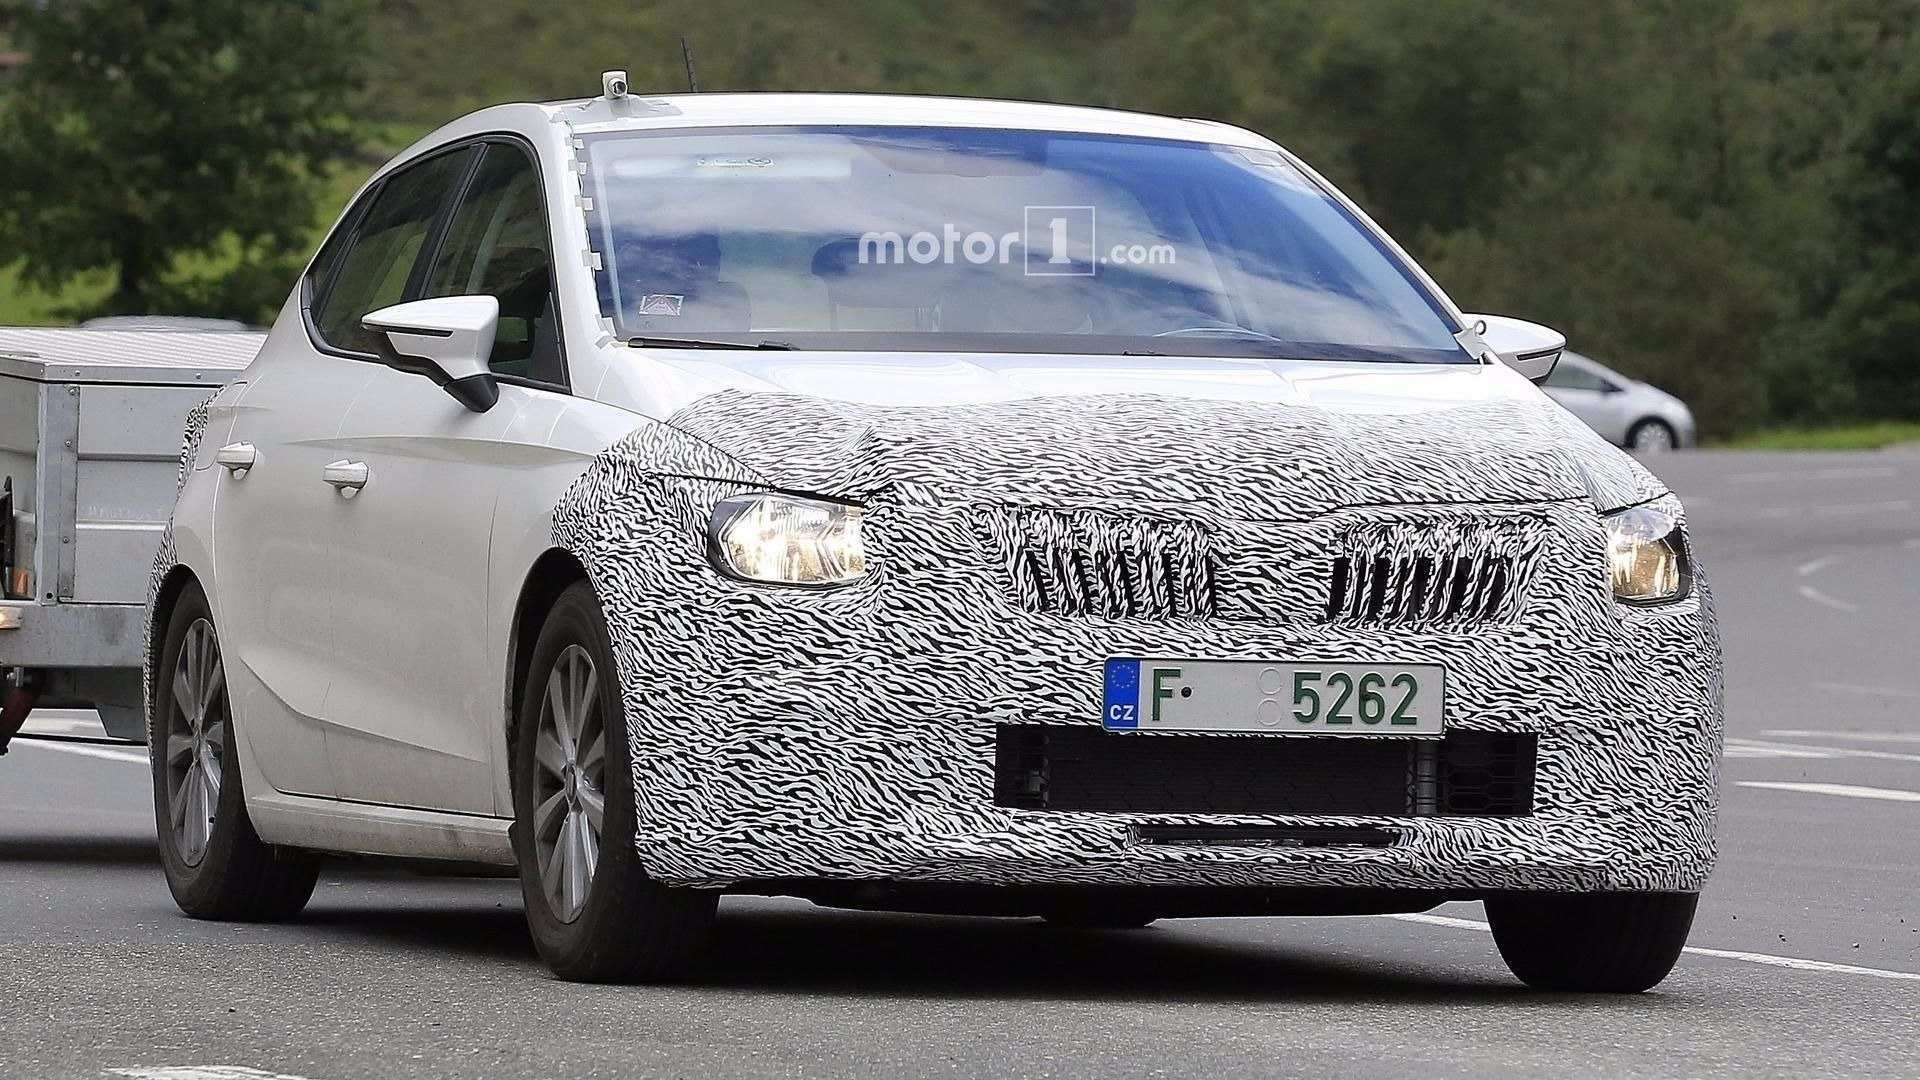 61 New 2019 The Spy Shots Skoda Superb Concept